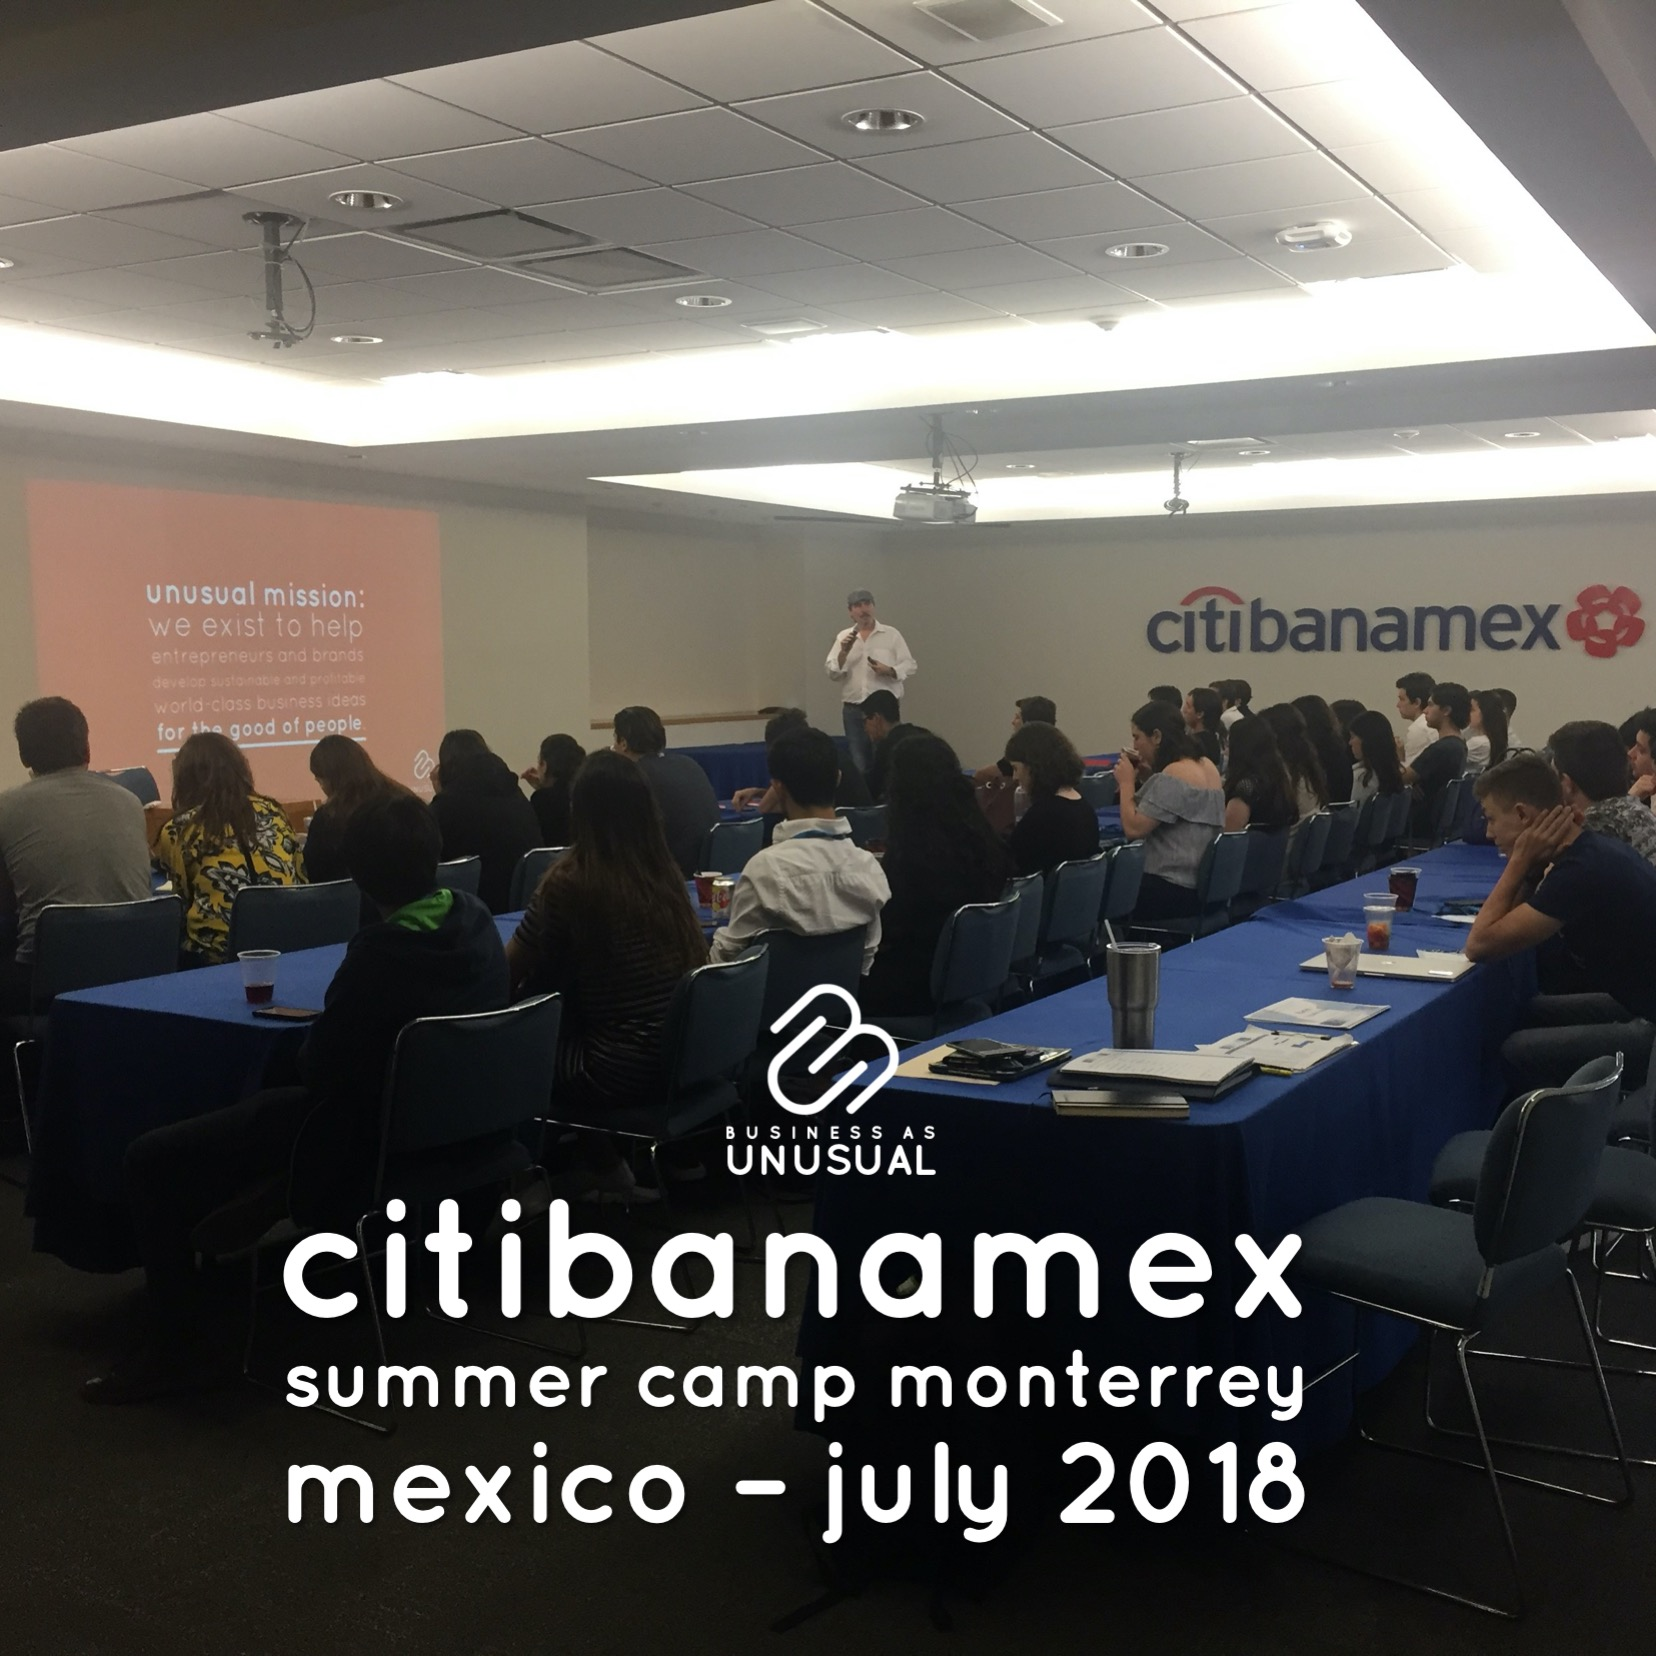 Citibanamex - Summer Camp Monterrey - Mexico July 2018